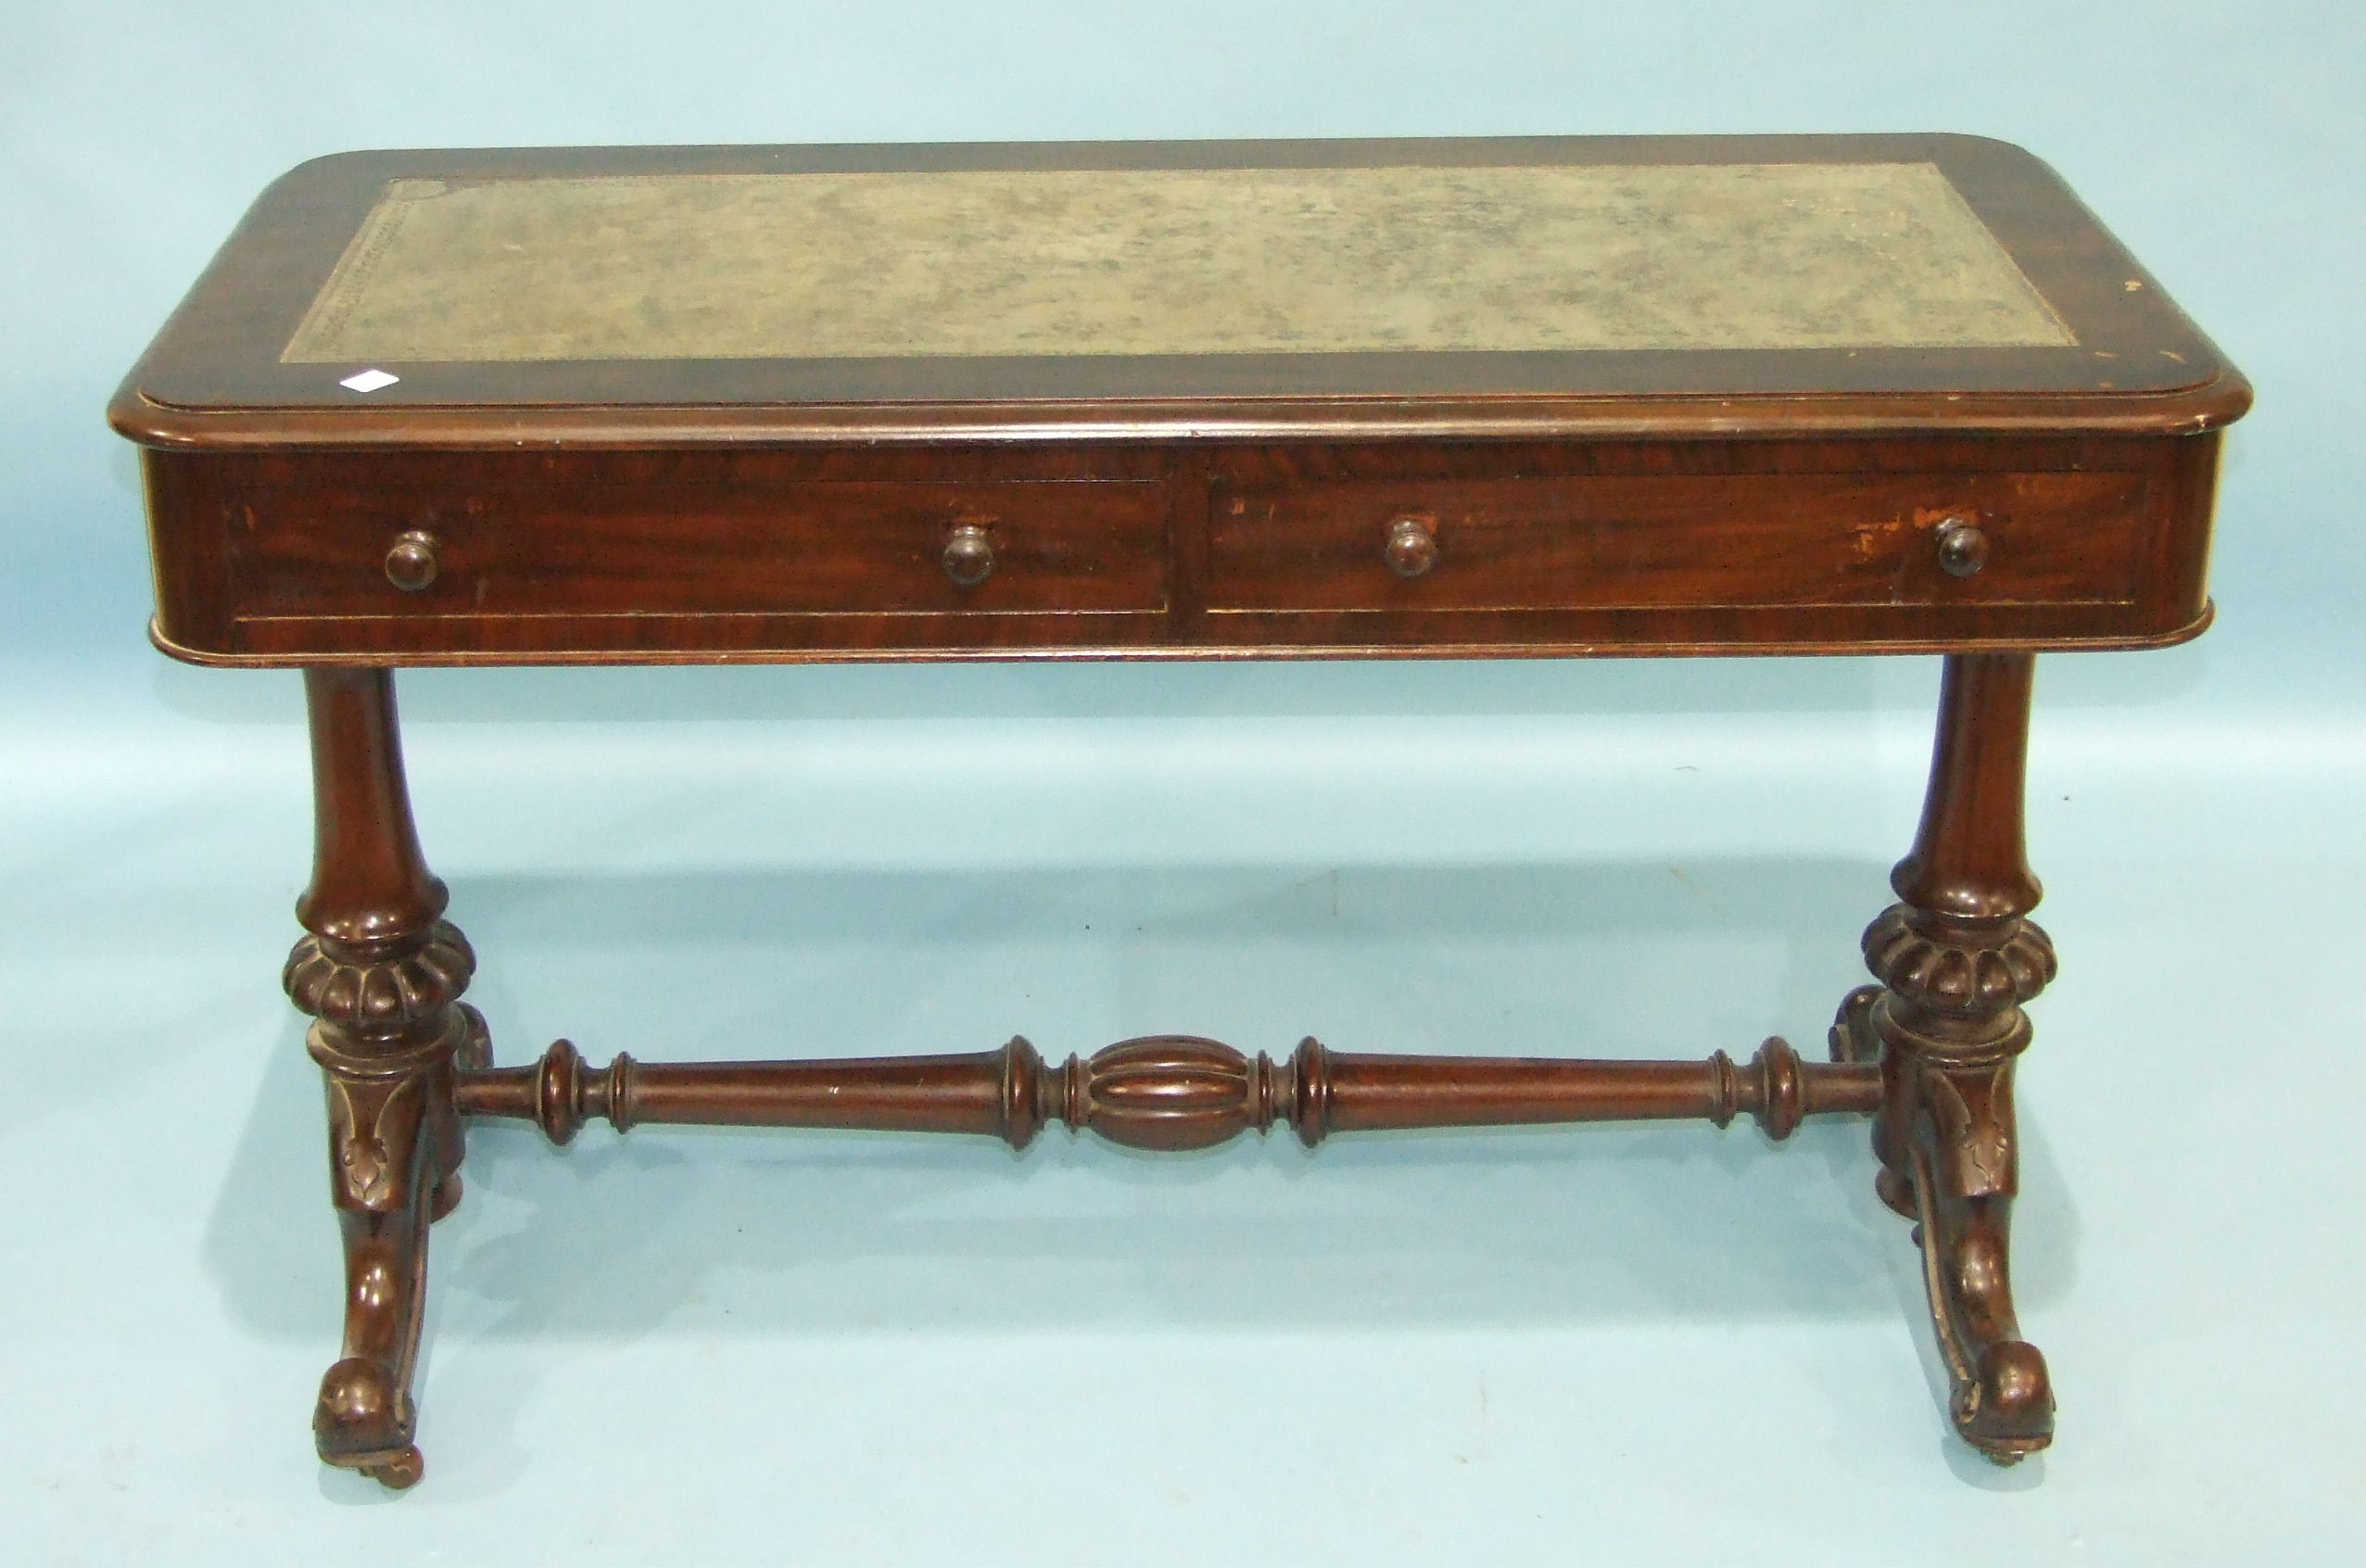 Lot 93 - A 19th century mahogany centre table, the rectangular top above two frieze drawers, on turned end